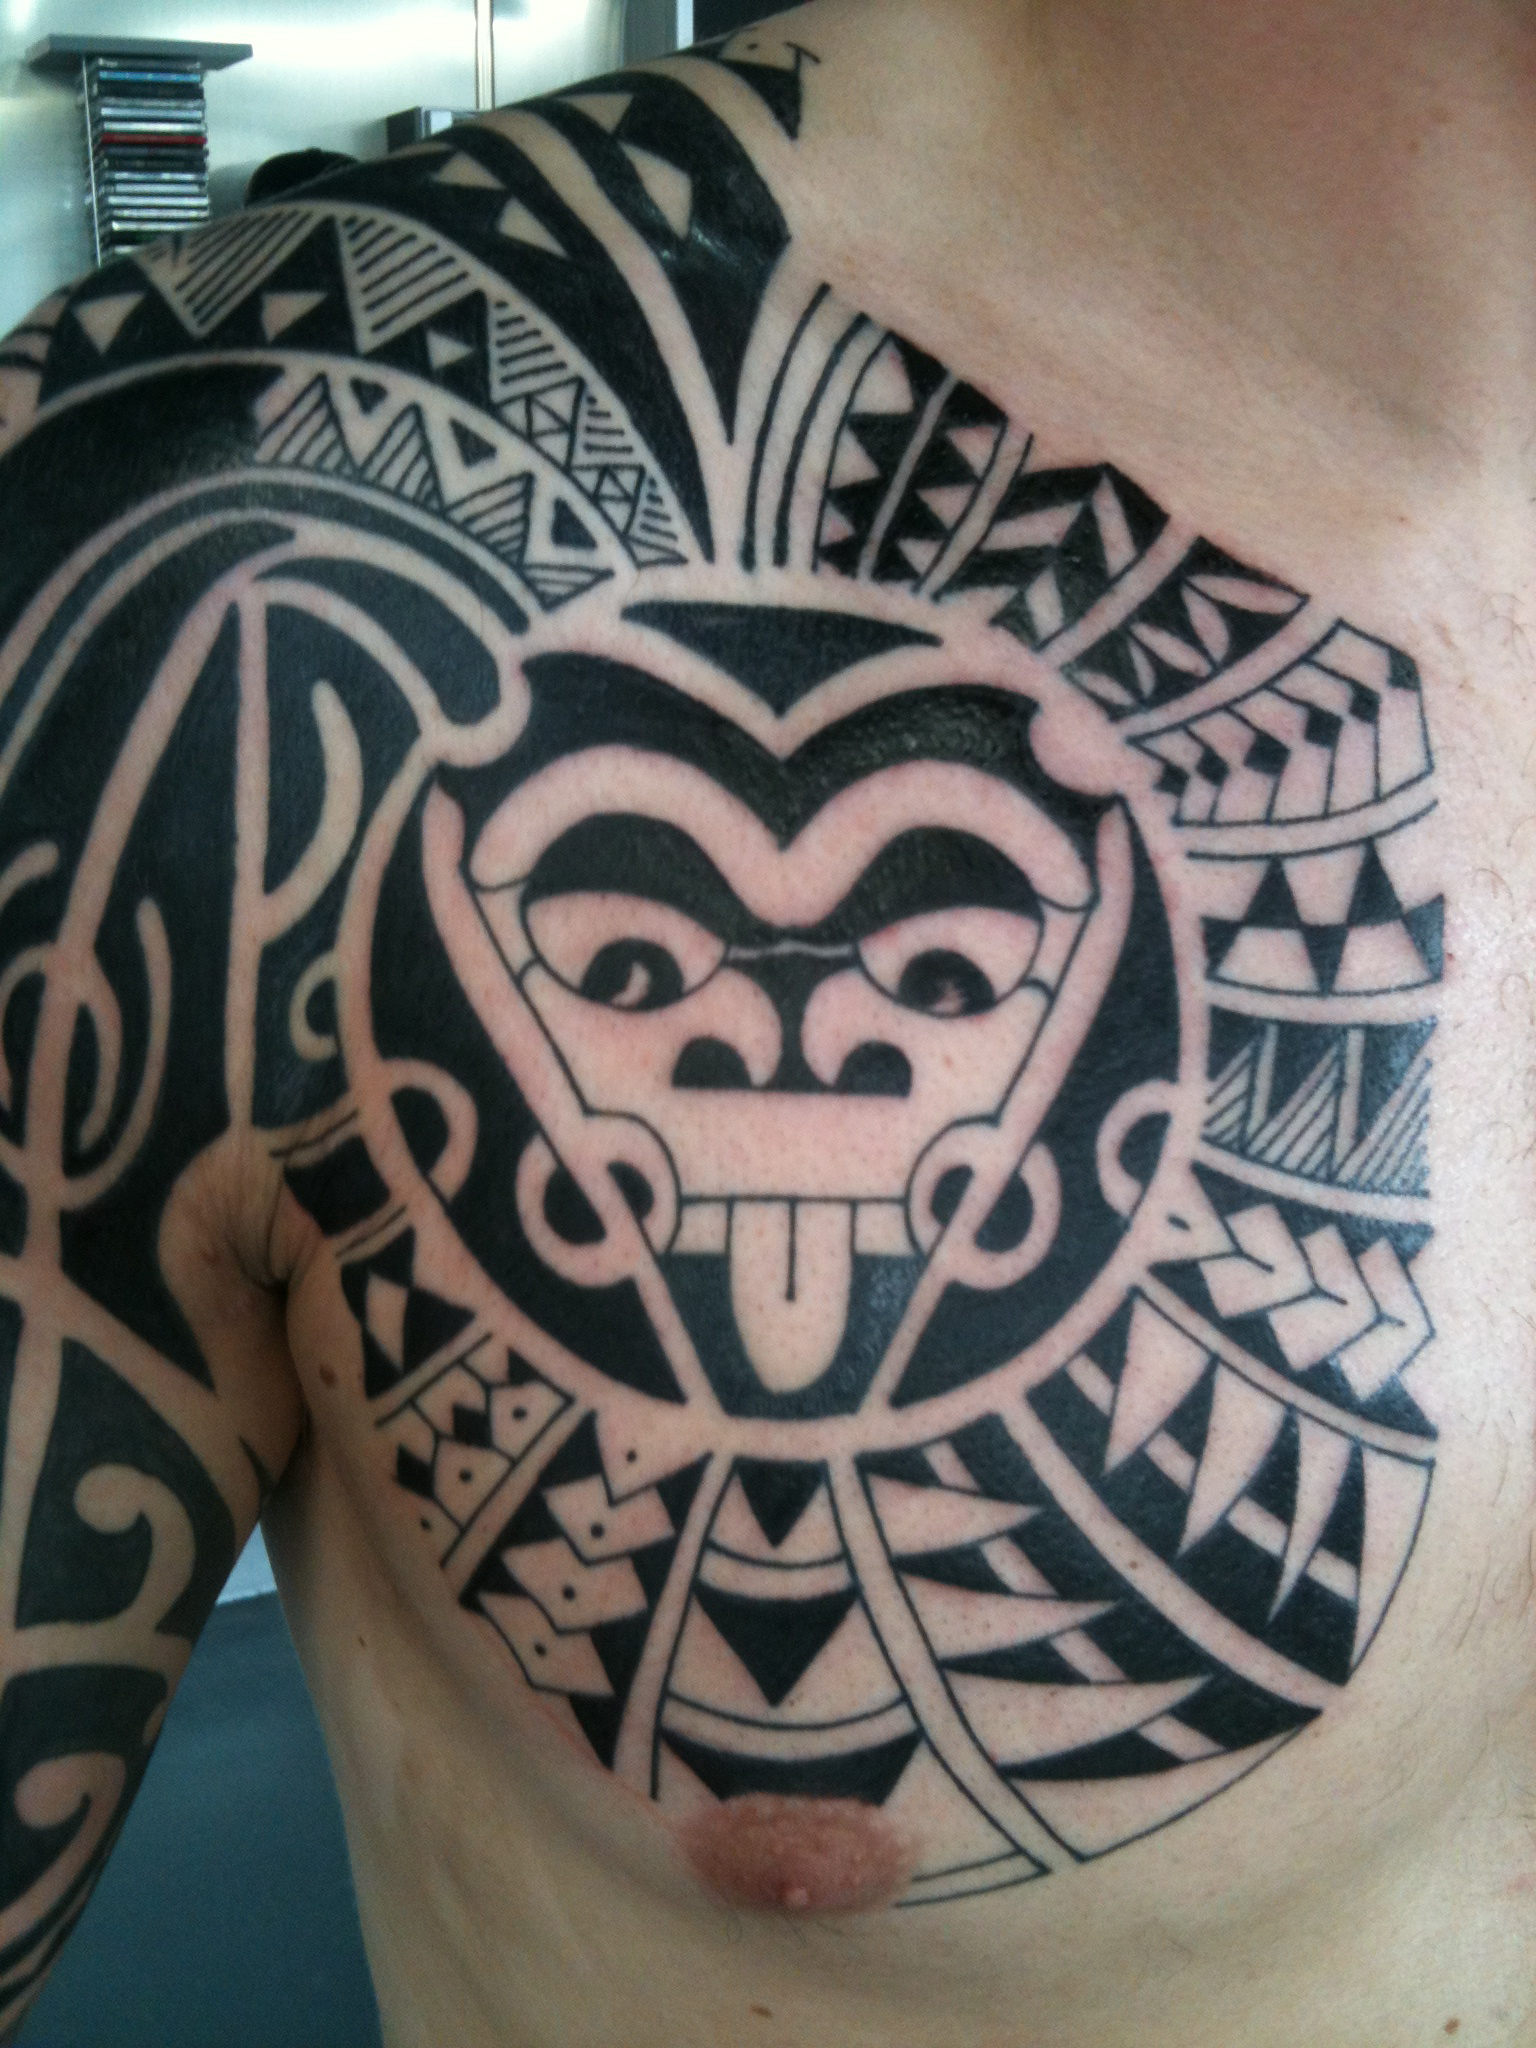 Maori Tribal Tattoo Designs Chest: Irish Street Tattoo The Rock Style Freehand Polynesian